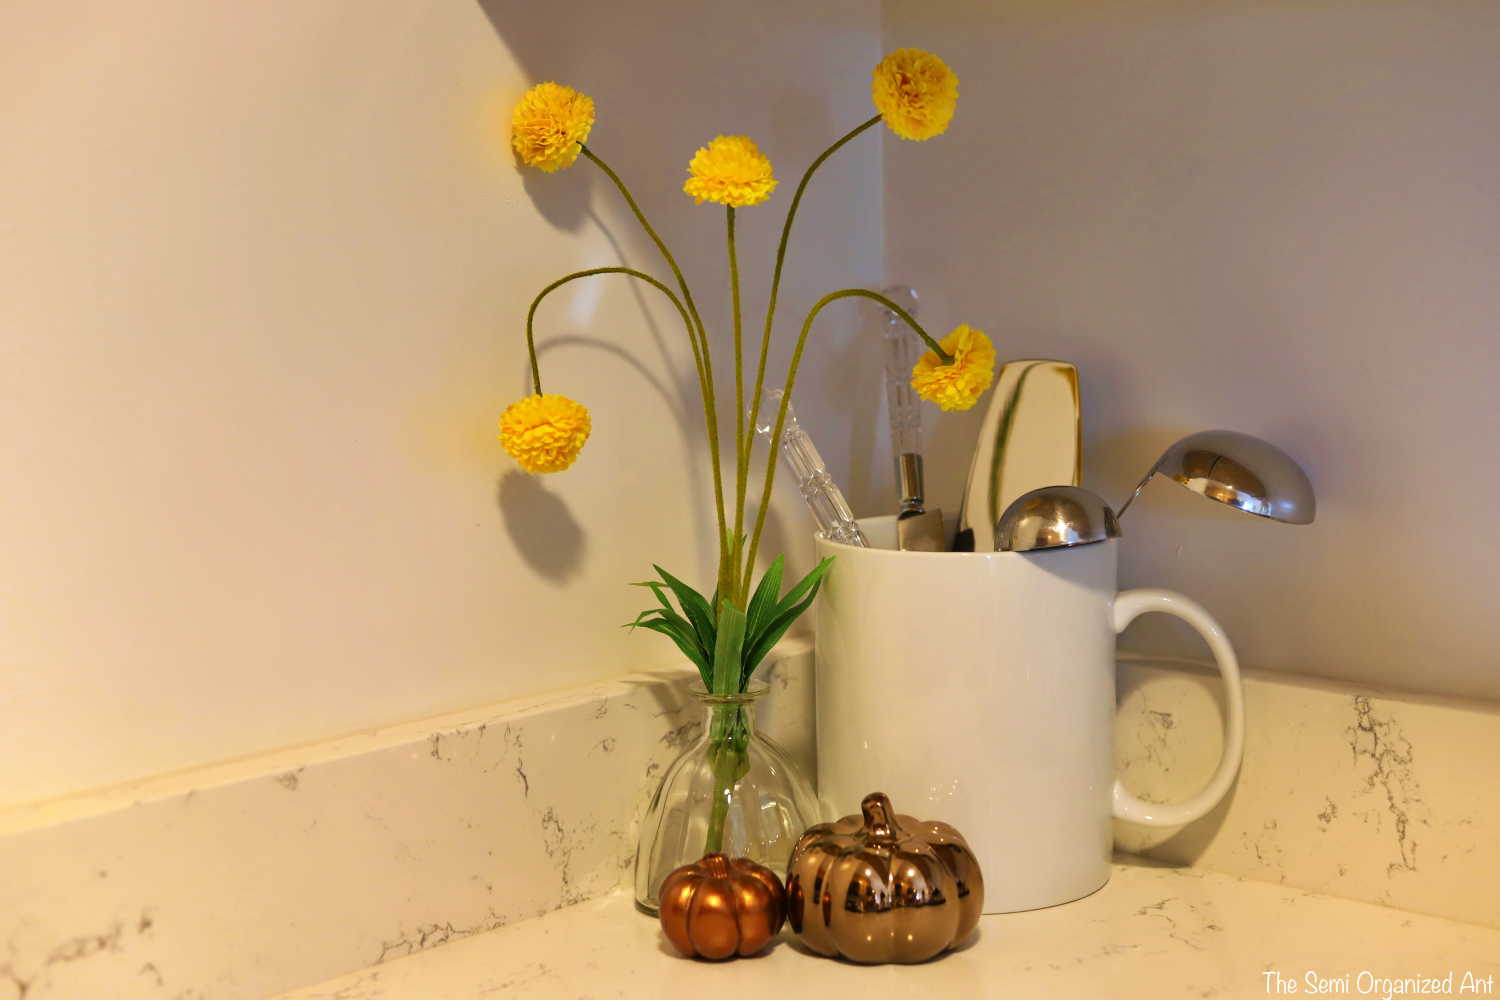 Simple Fall Kitchen Decor - The Semi Organized Ant